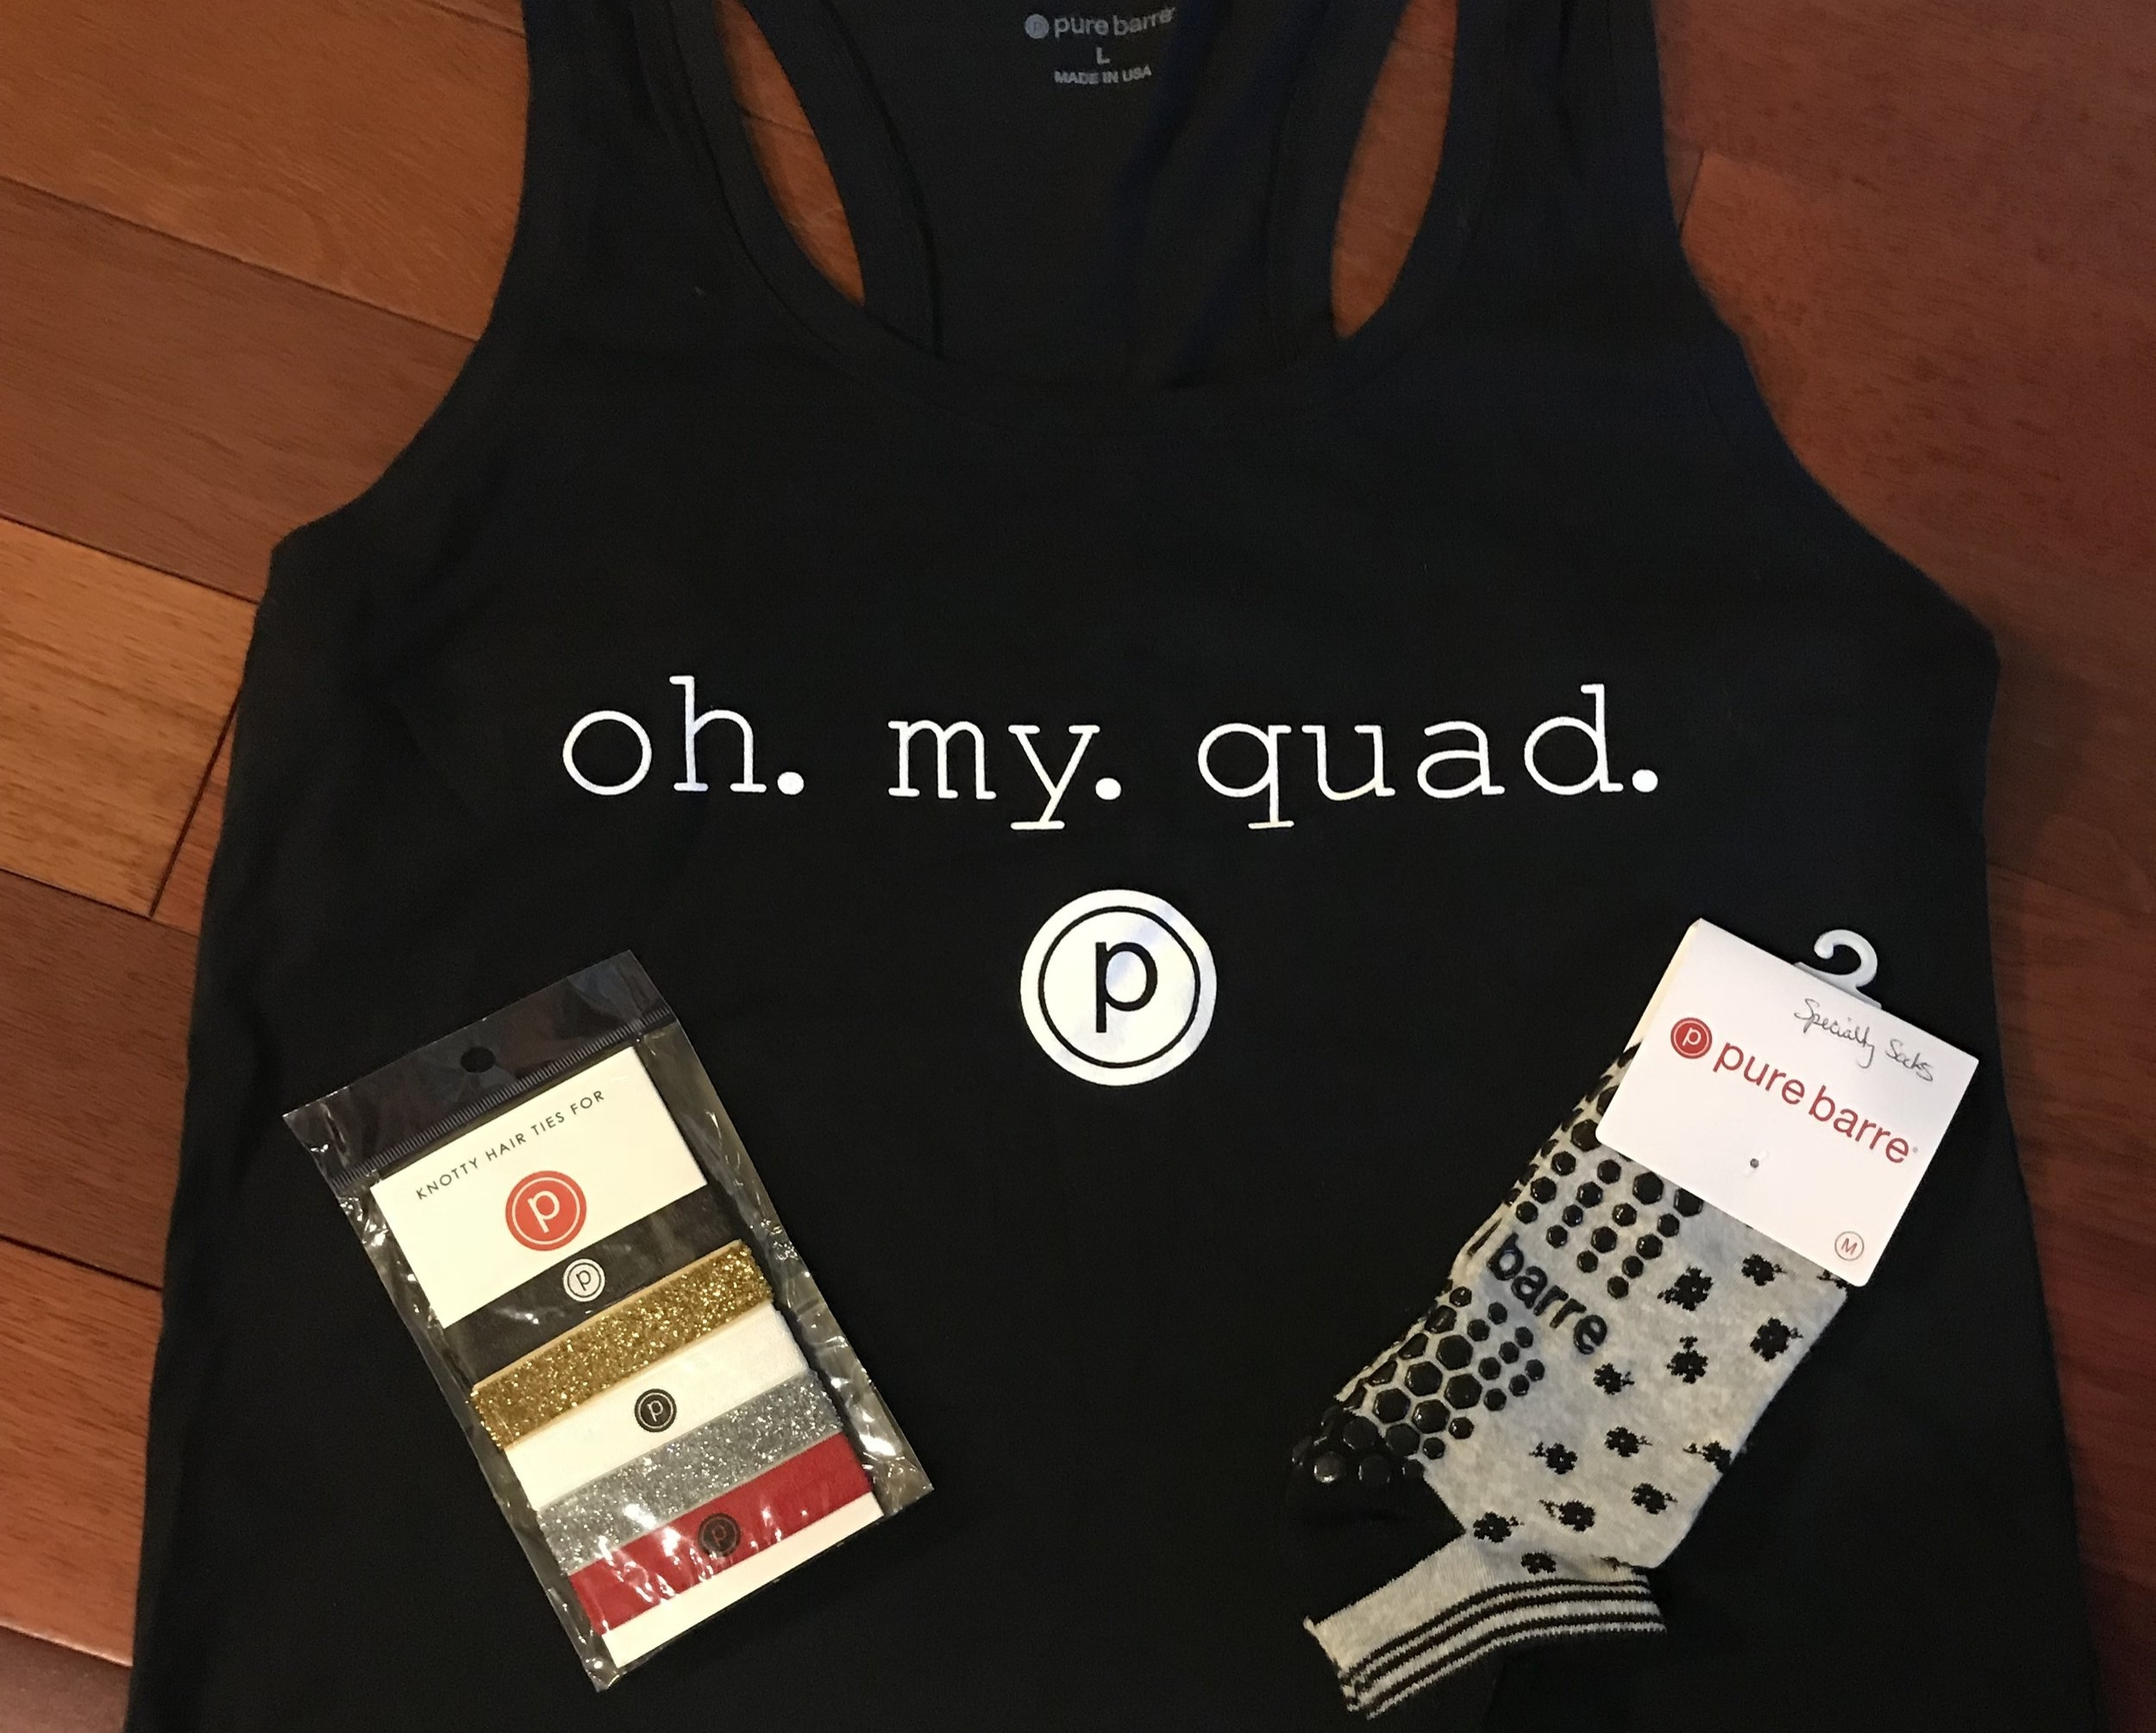 PURE BARRE PACKAGE   Check out the best barre technique in this high-intensity, low-impact, total body workout at Pure Barre Greenville. Included is an intro month of (4) weeks of unlimited classes, tank top (size L), hair ties and specialty barre socks.  DONOR: Pure Barre Greenville VALUE: $200